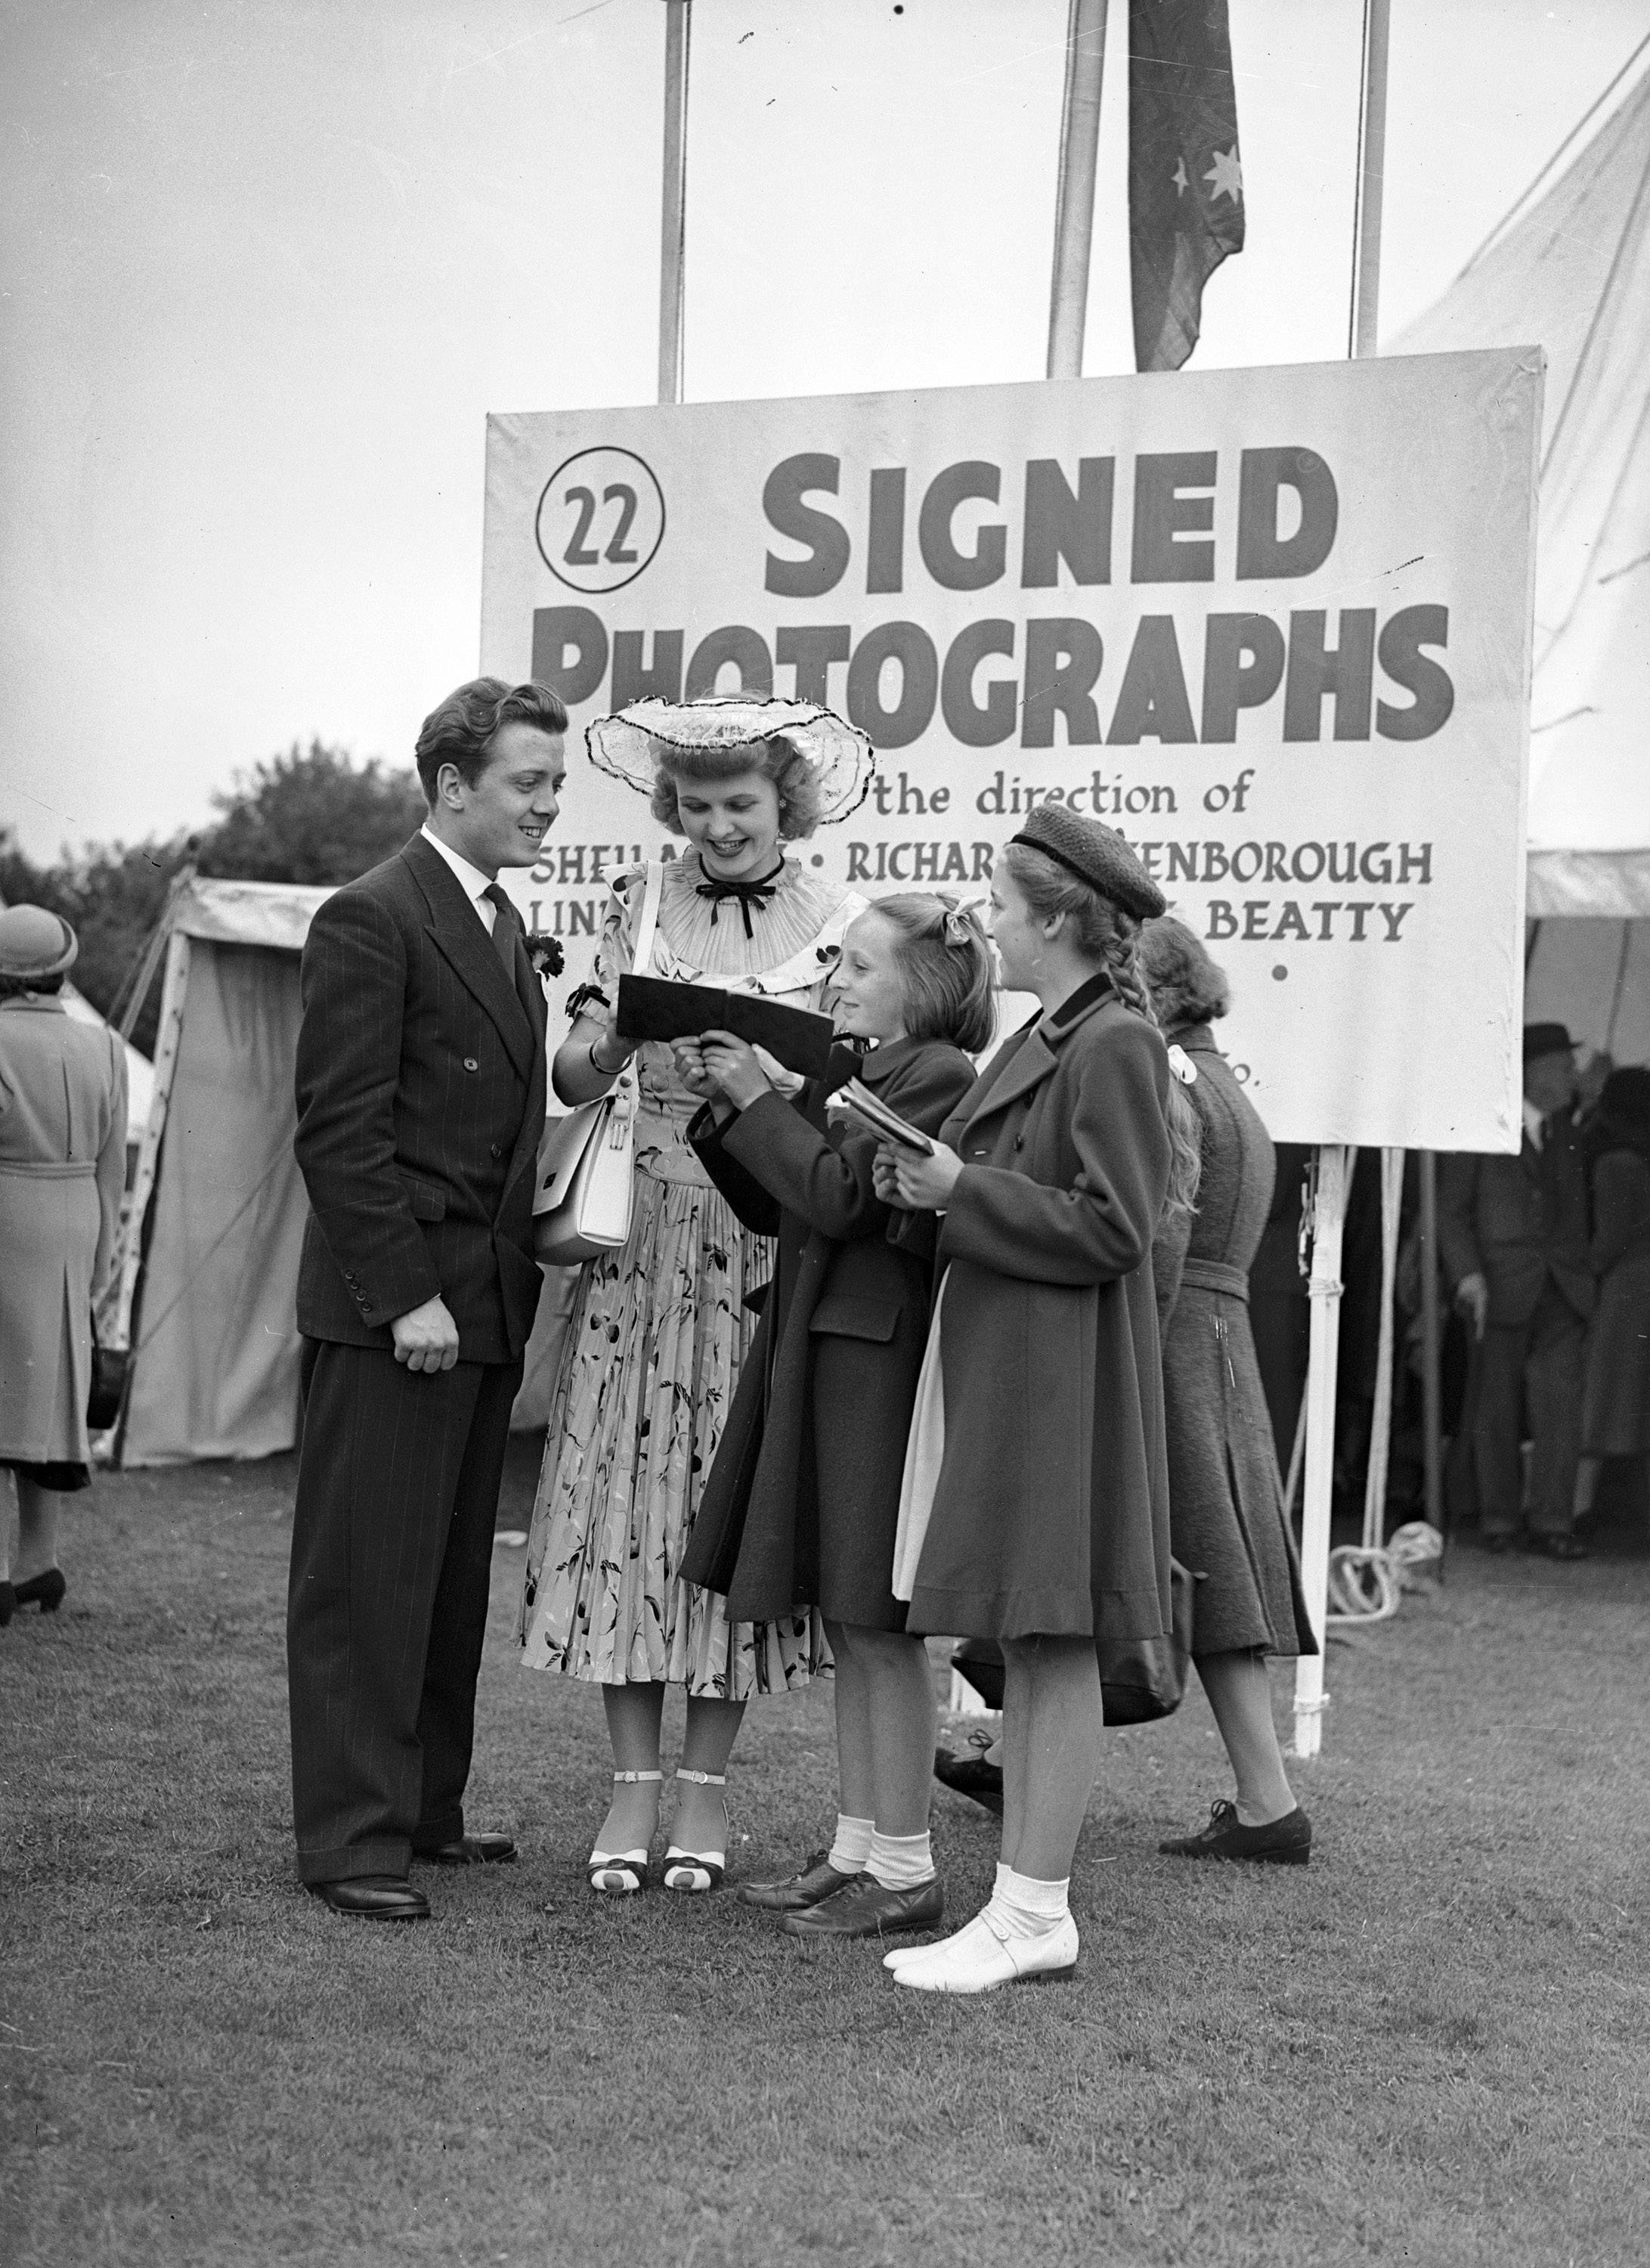 Richard Attenborough and his wife Sheila Sim of three years signing autographs, 1948.